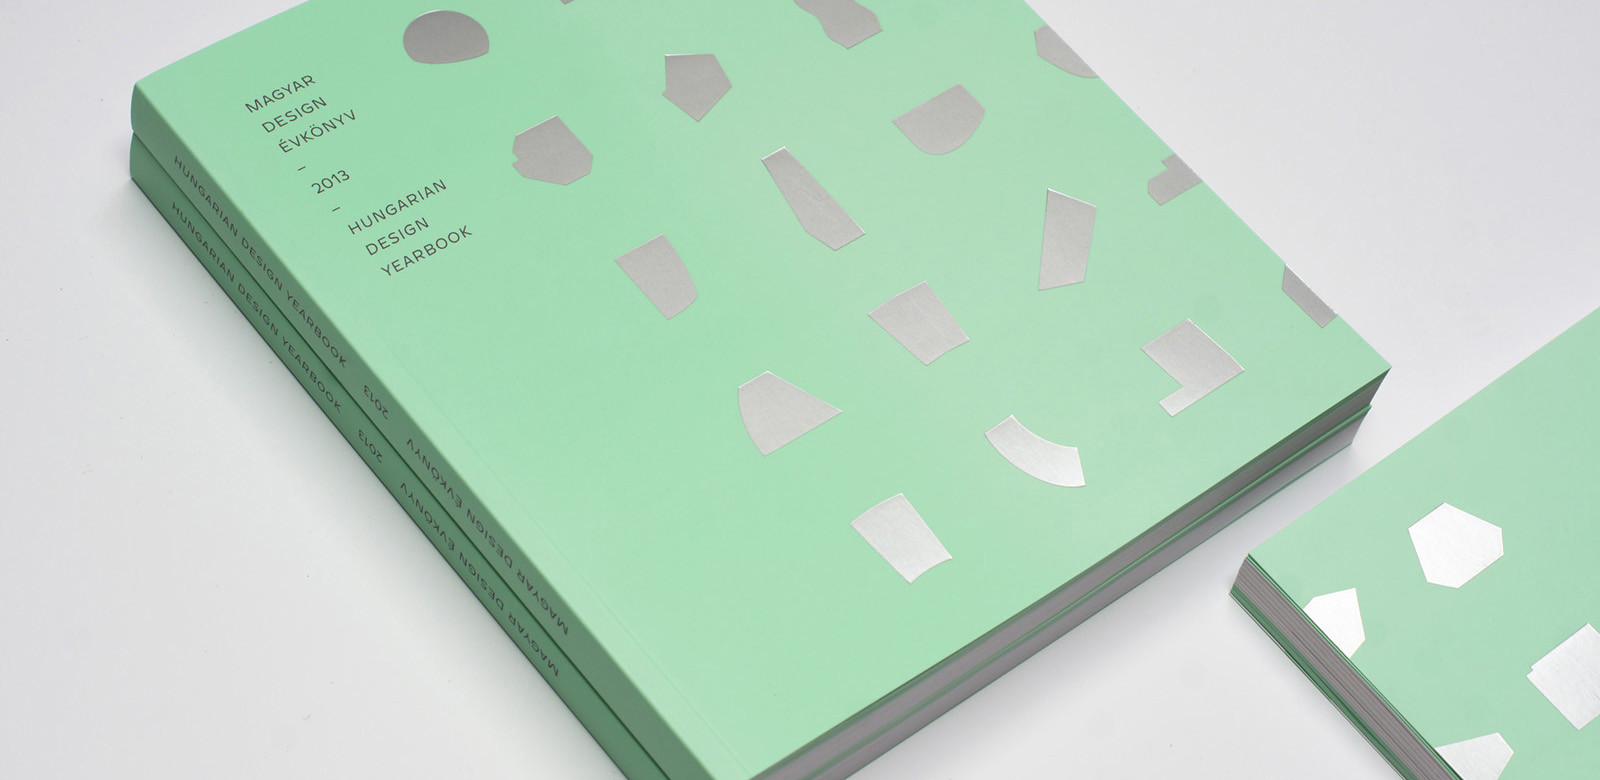 Hungarian_Design_Yearbook_2014_cover_02.